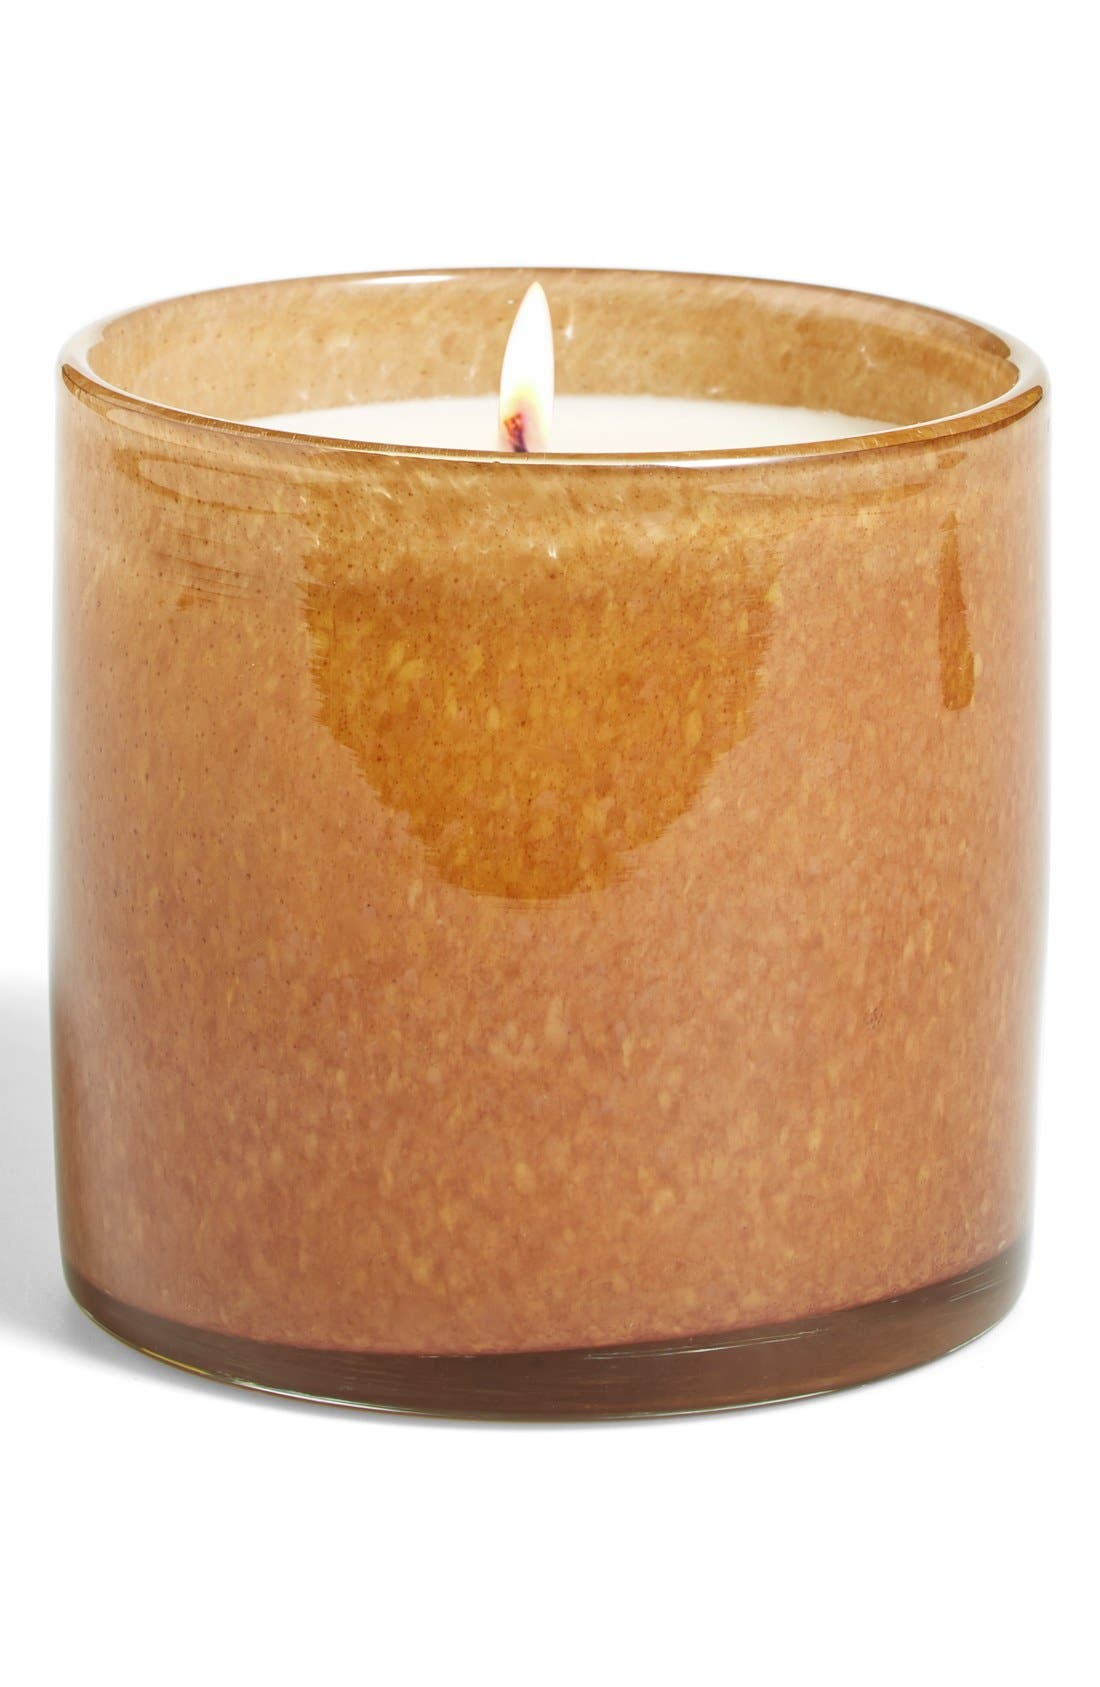 'Amber Black Vanilla - Foyer' Candle,                         Main,                         color, No Color